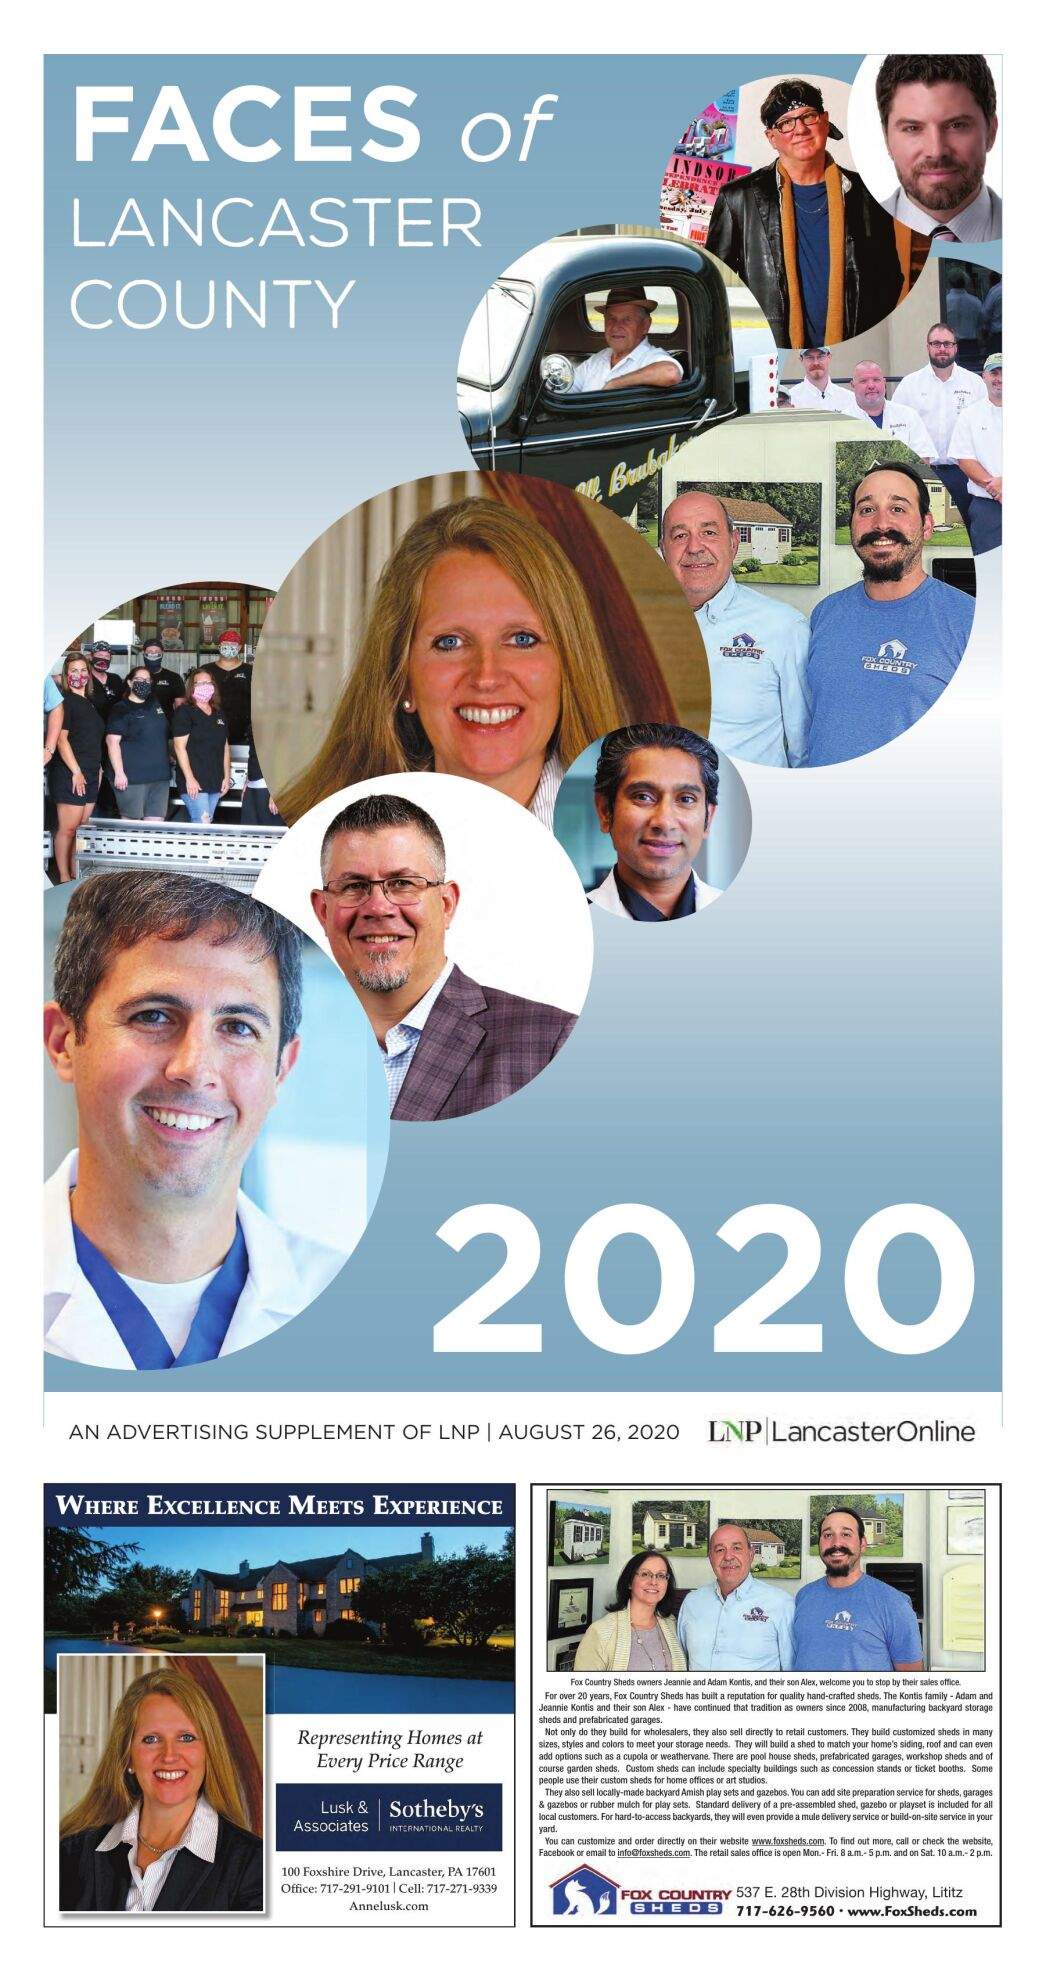 Faces of Lancaster County 2020